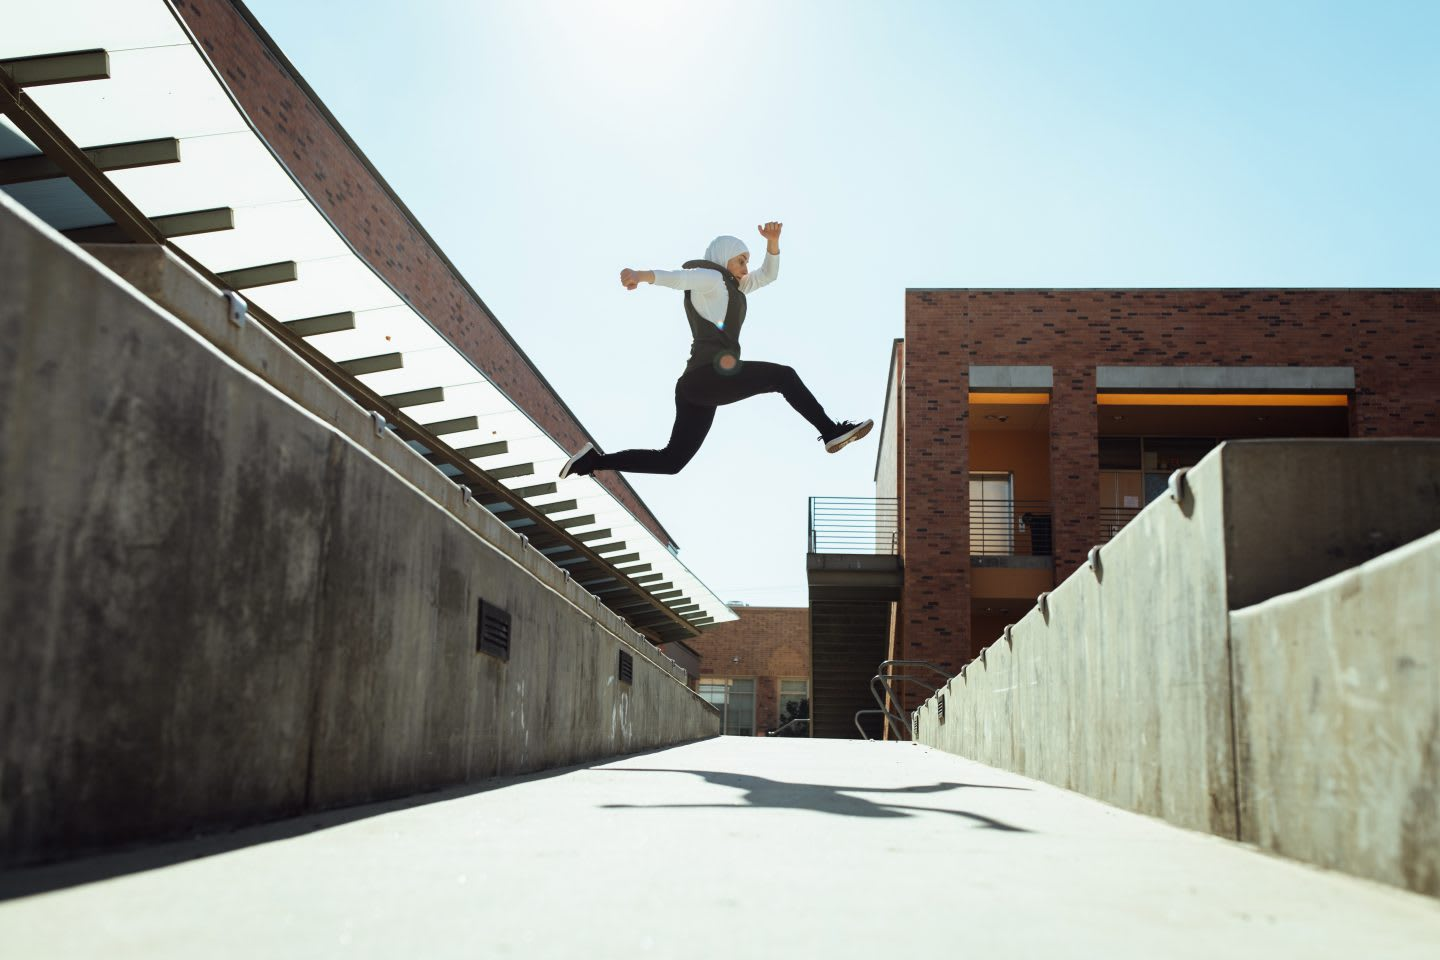 Woman jumping over a path in the sun, parkour, jump, leap, action, sports, exercise, Sara Mudallal, athlete